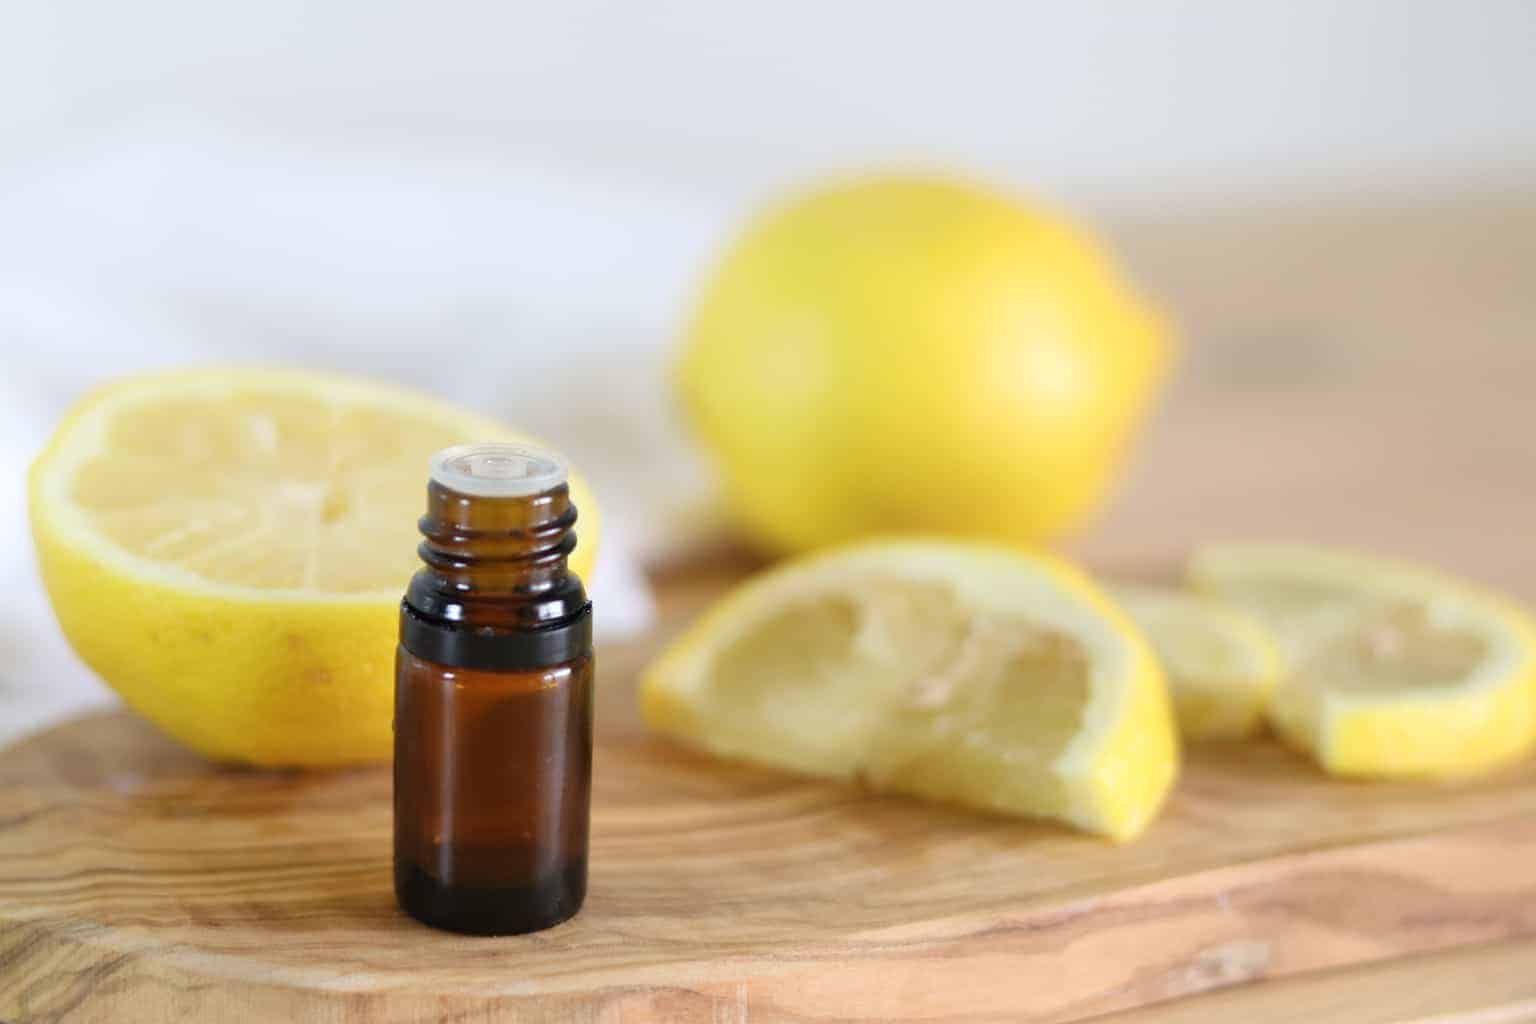 Lemon essential oil cane used for cooking, cleaning, immune support, and so much mire. Follow along for essential oil roller bottle recipes and diffuser blends.